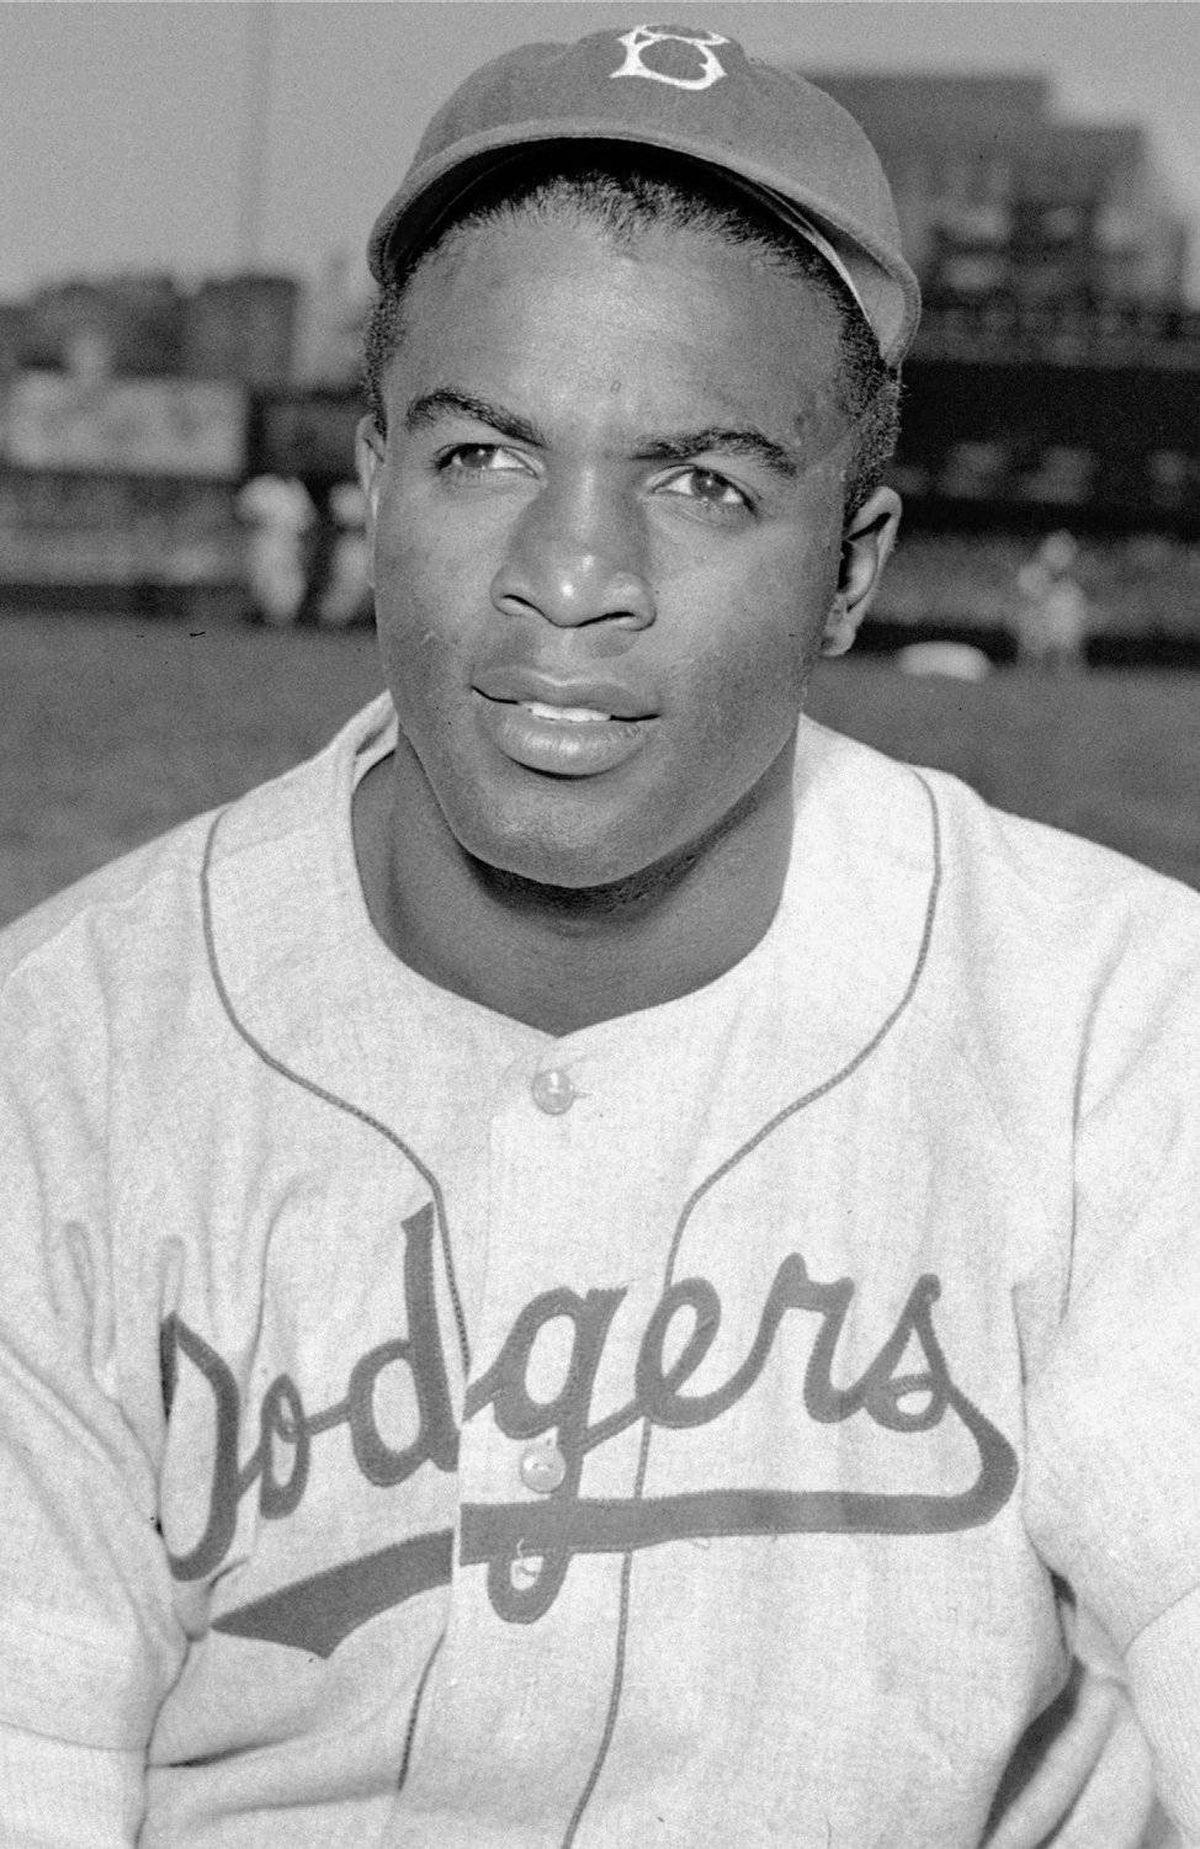 Brooklyn Dodgers' infielder Jackie Robinson is shown in this April 18, 1948 file photo.